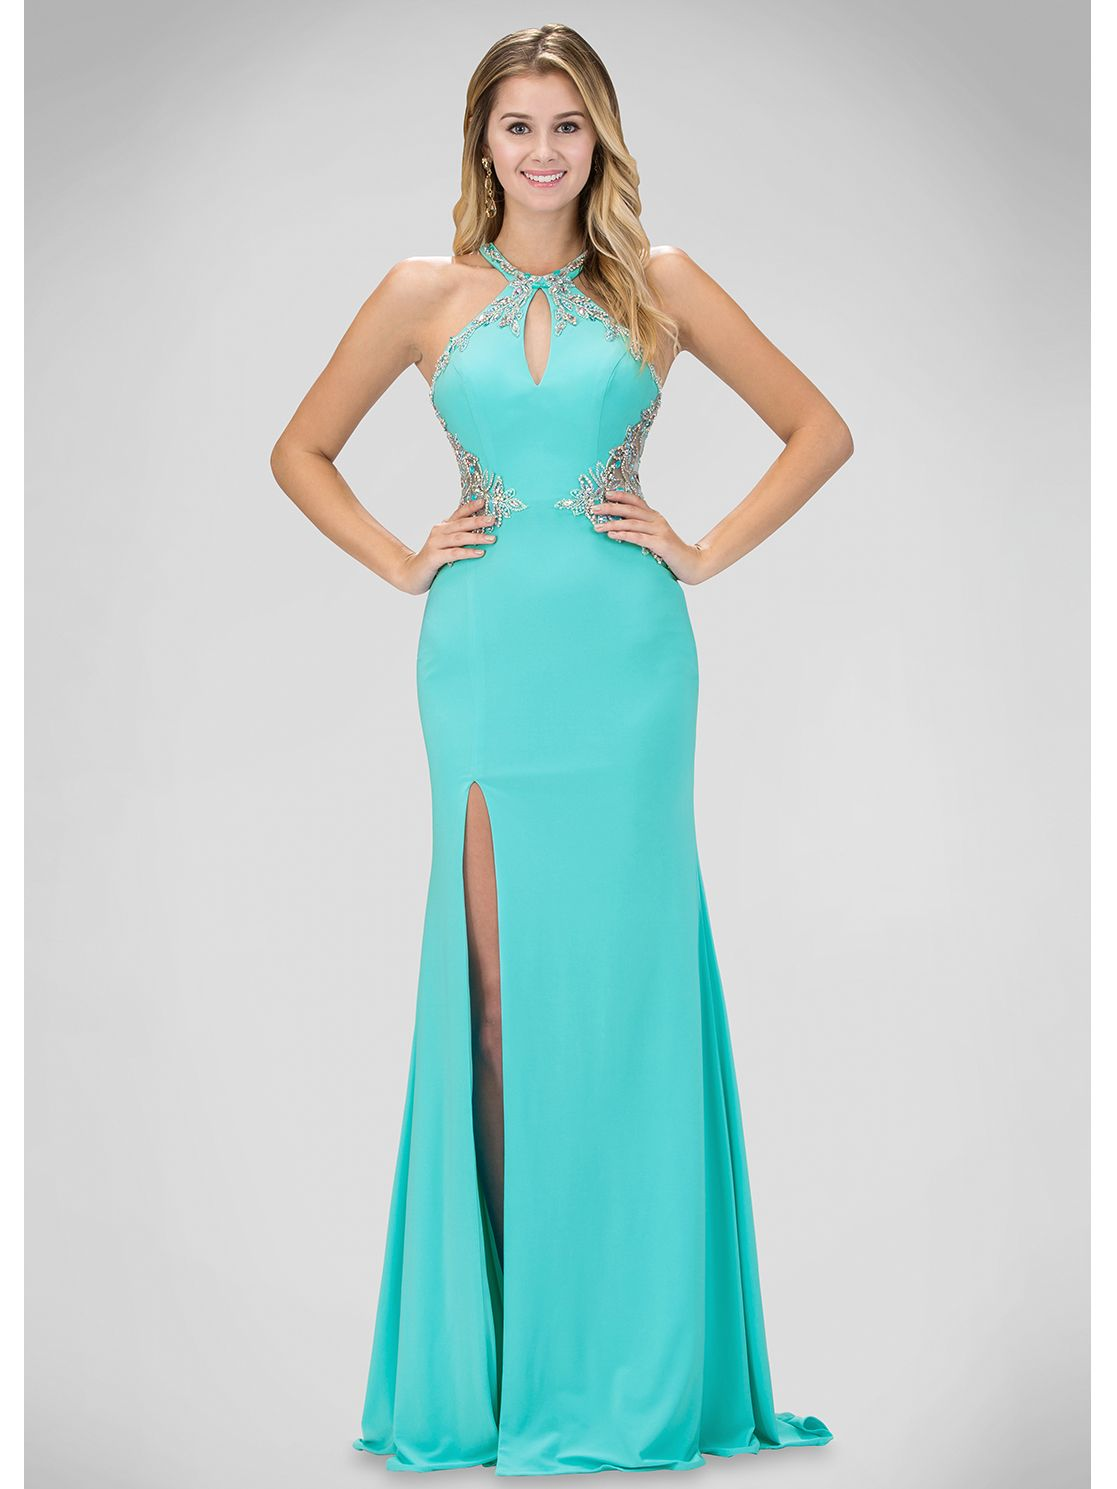 Halter Top Prom Evening Dress with Slit | Sung Boutique L.A. ...